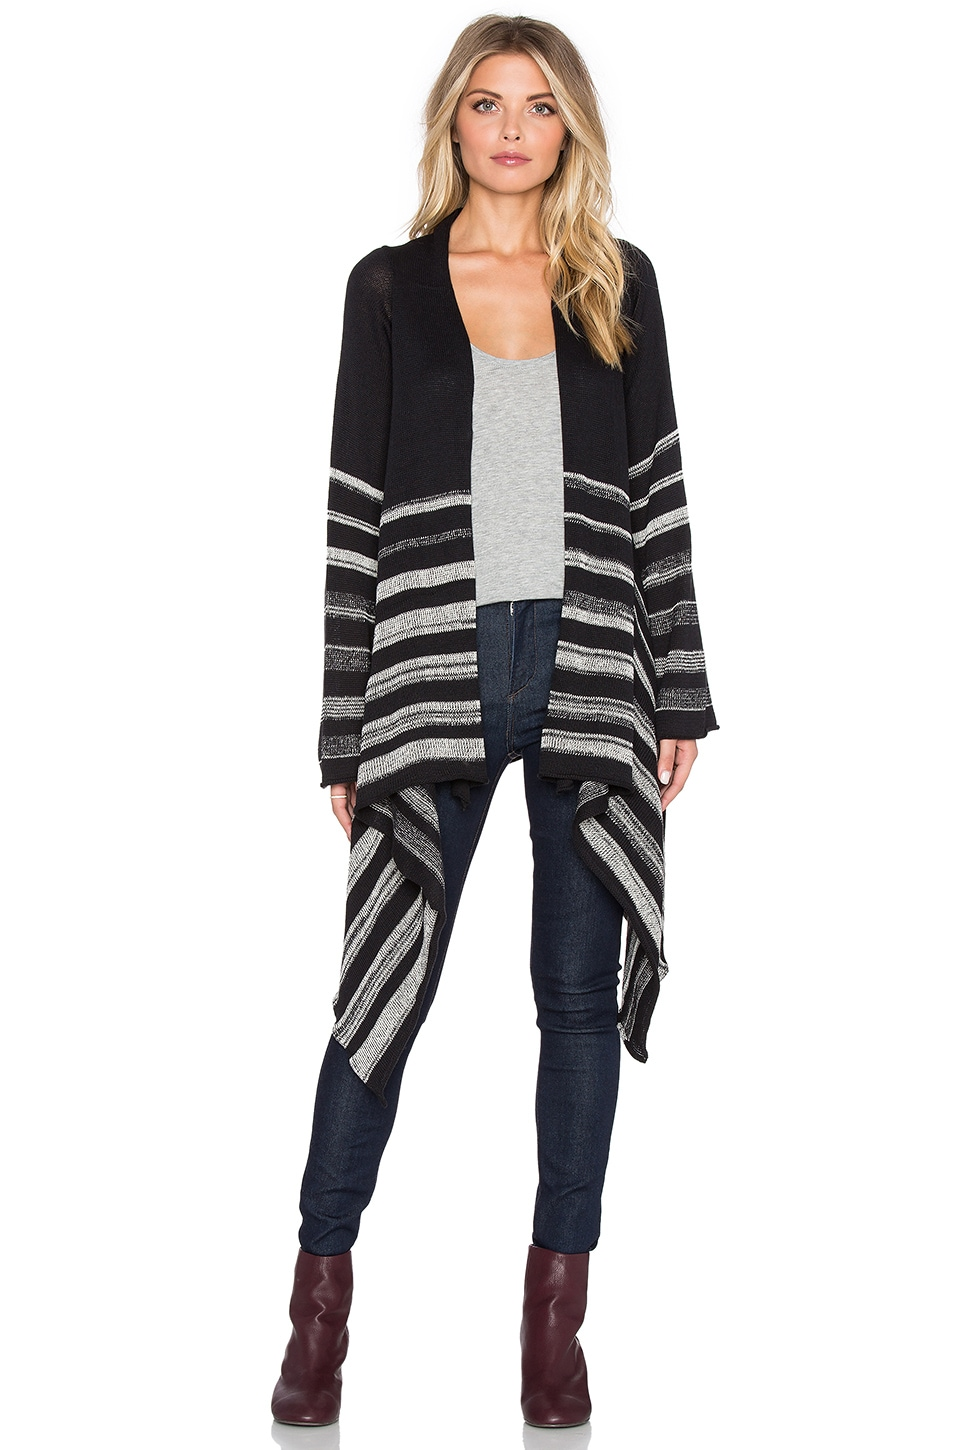 Goddis Naples Cardigan in Valor